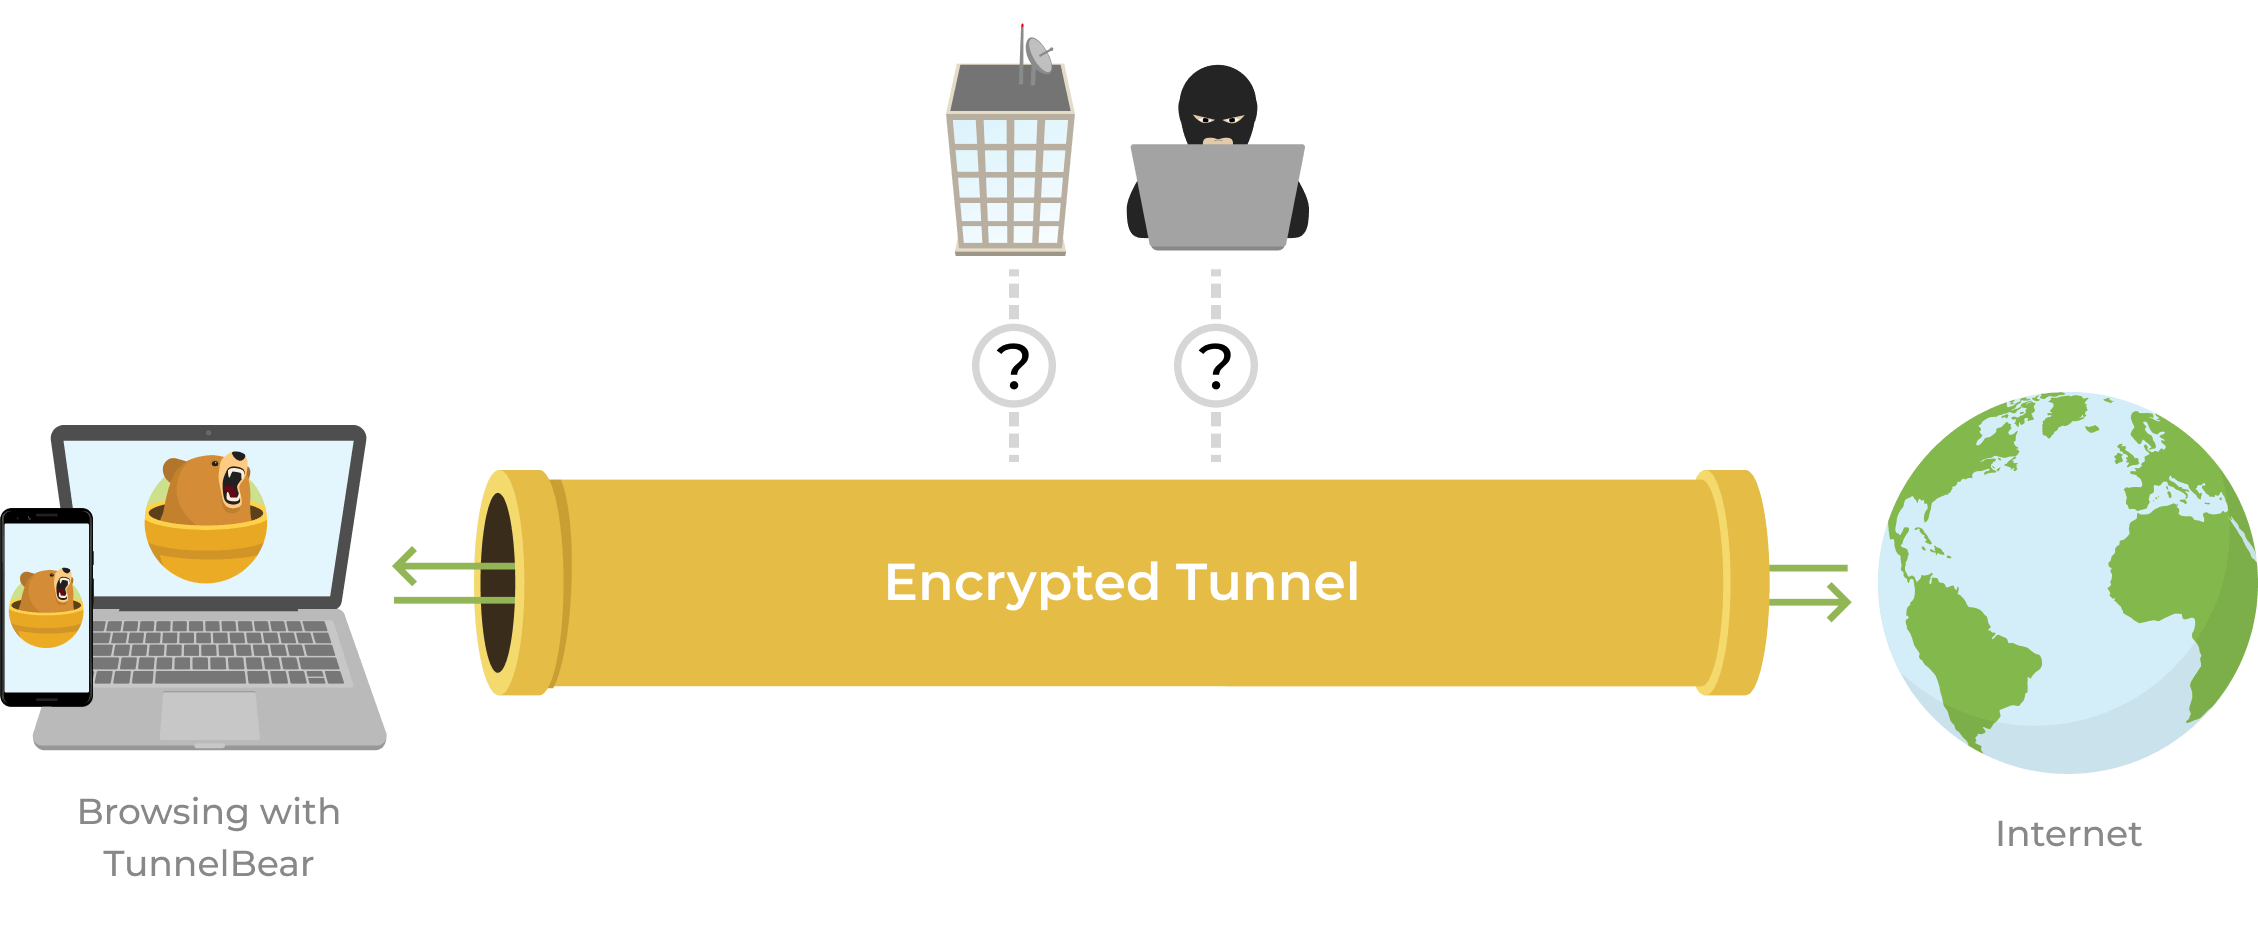 TunnelBear sends your browsing through an encrypted tunnel, keeping you safe from ISP and hackers